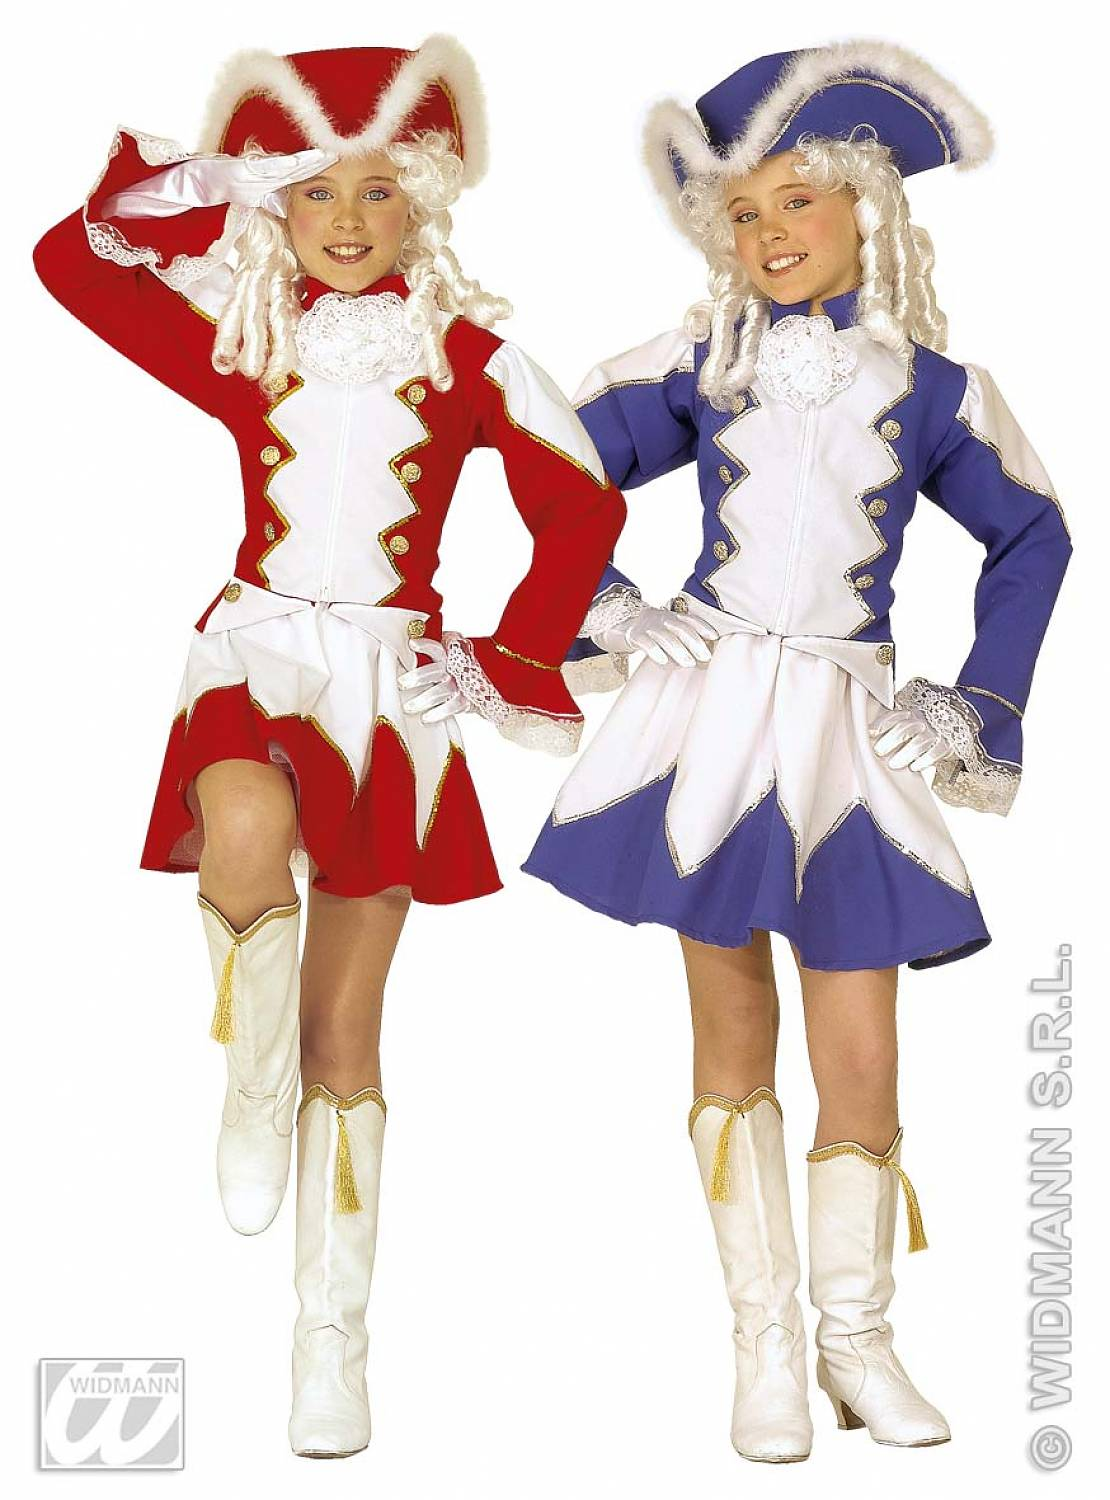 Carnival-costumes Children Majorette  sc 1 st  in the most foolish online fancy dress and accessory store & Carnival-costumes: Children: Majorette - Fancy dress